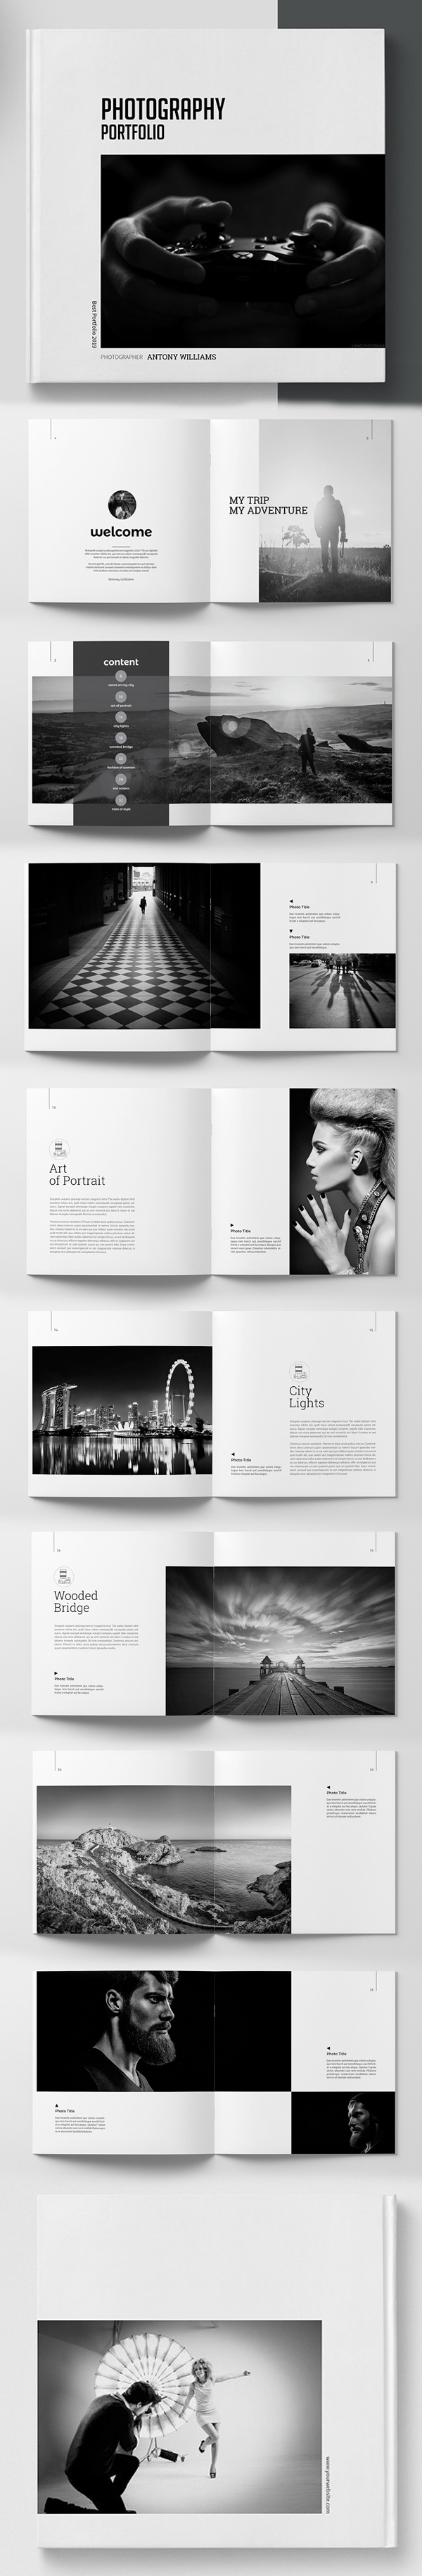 Photography Square Portfolio Template